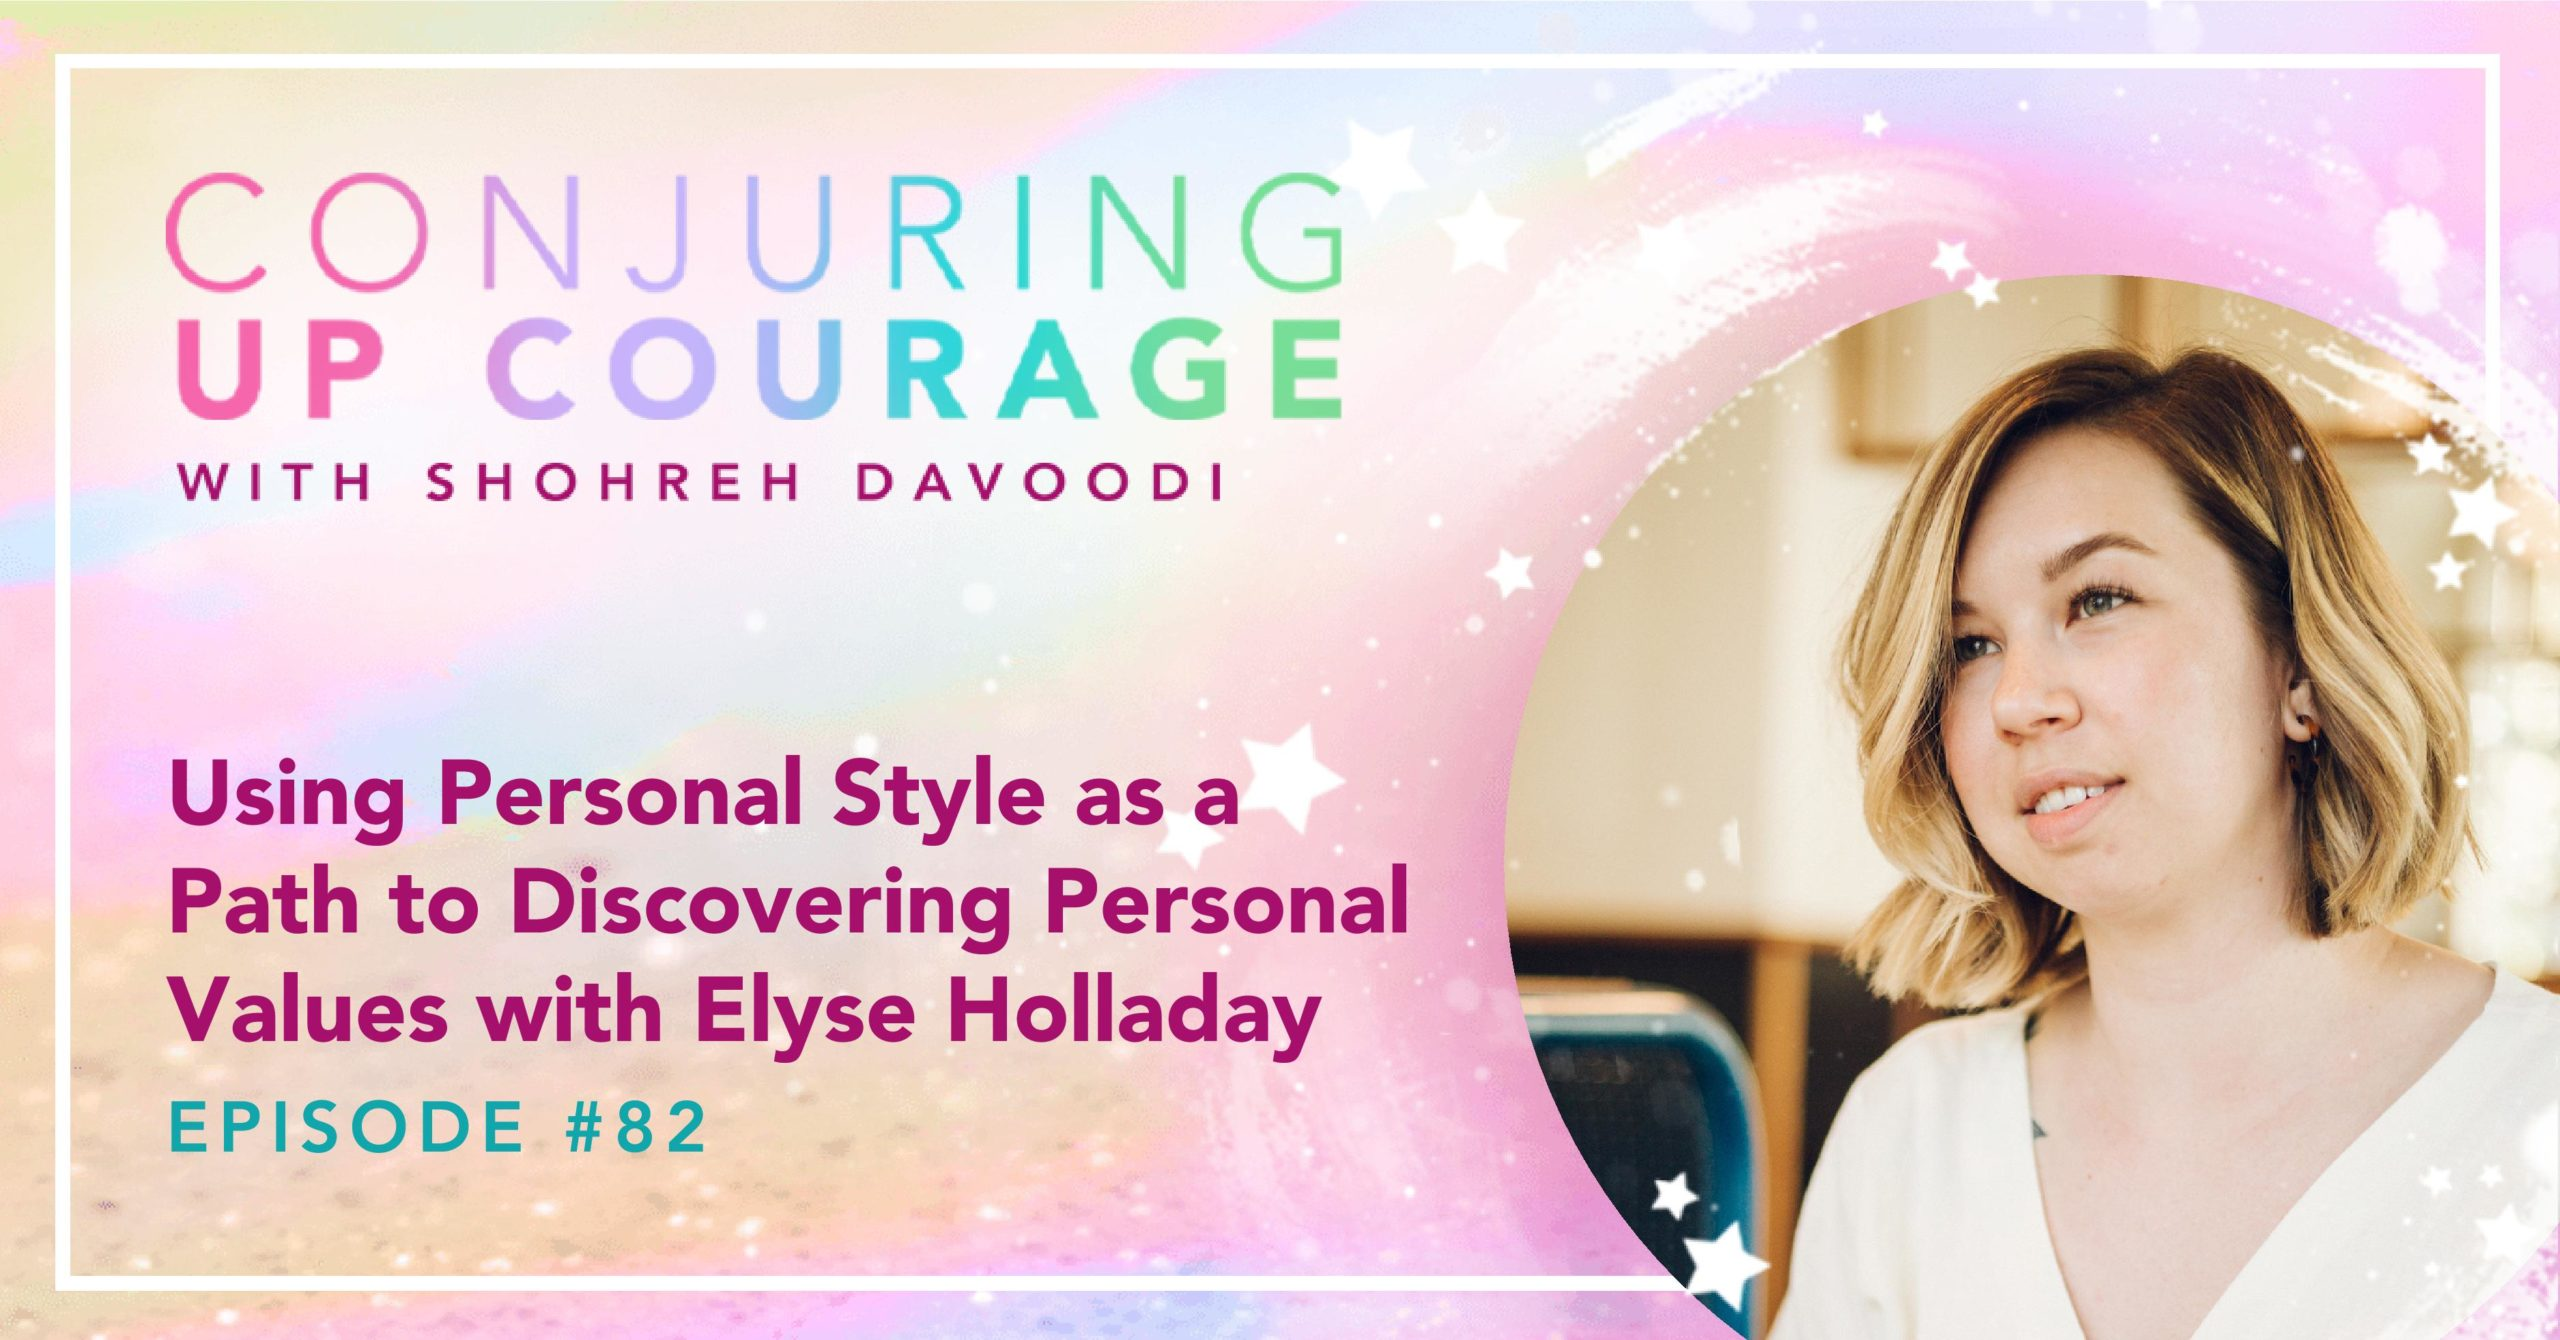 Banner linking to the Conjuring Up Courage podcast episode with a photo of Elyse and the podcast title